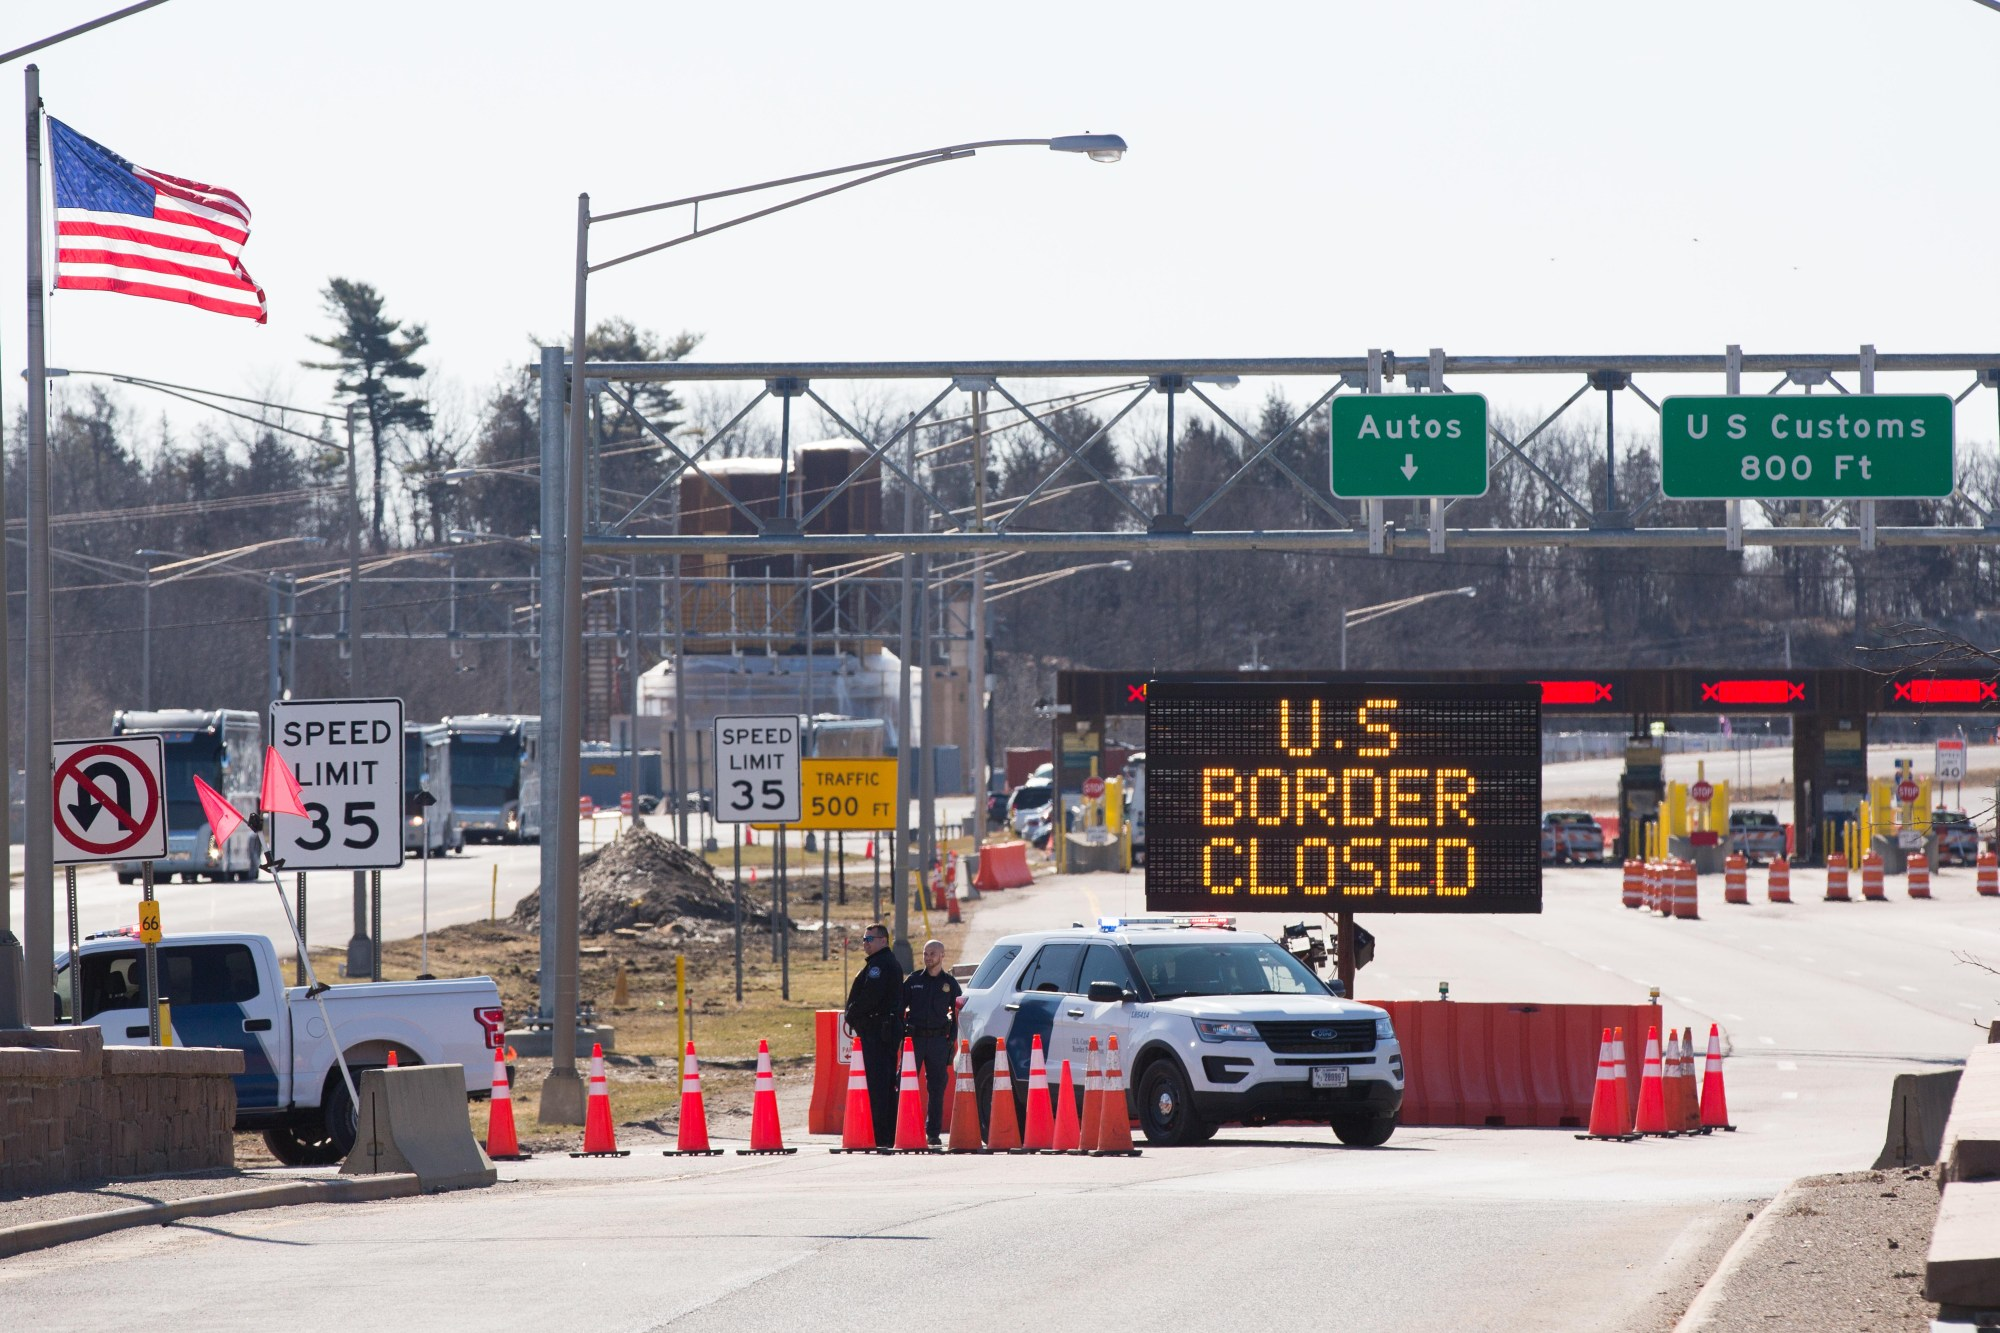 U.S. Customs officers stand beside a sign saying that the U.S. border is closed at the U.S.-Canada border in Lansdowne, Ontario, on March 22, 2020. (LARS HAGBERG/AFP via Getty Images)